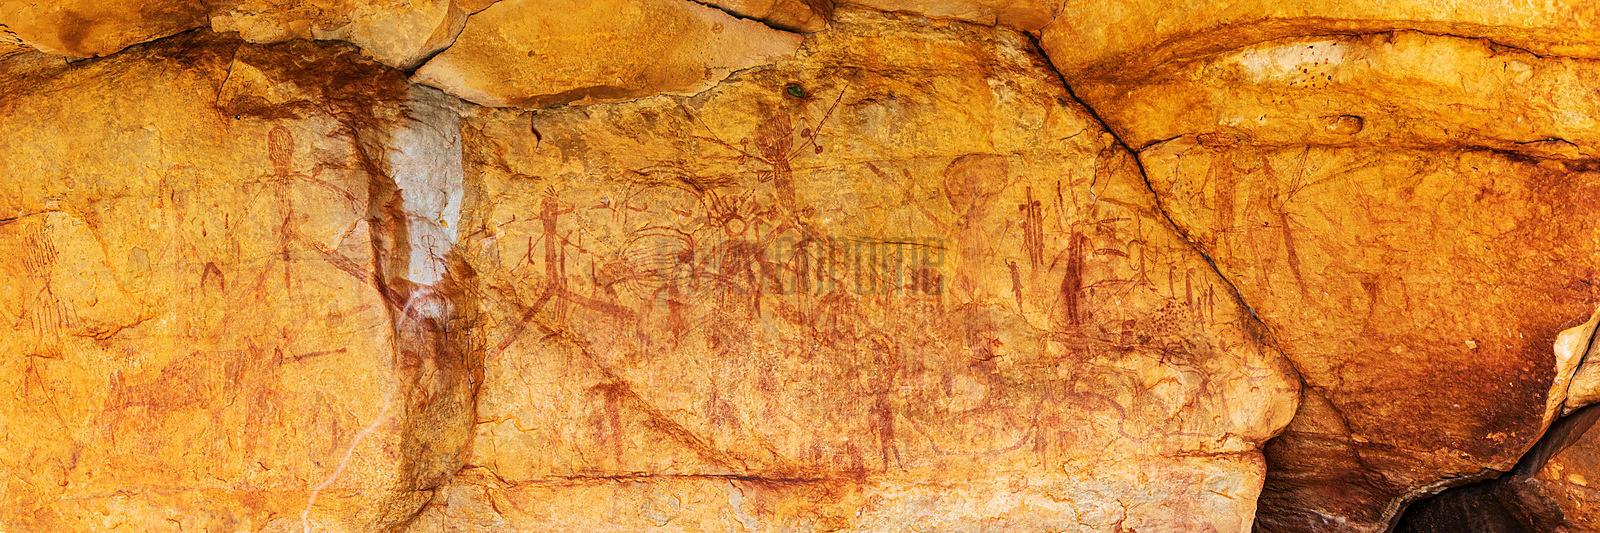 Rock Art Endemic to the Kimberley called Gwion Gwion or Bradshaw Art